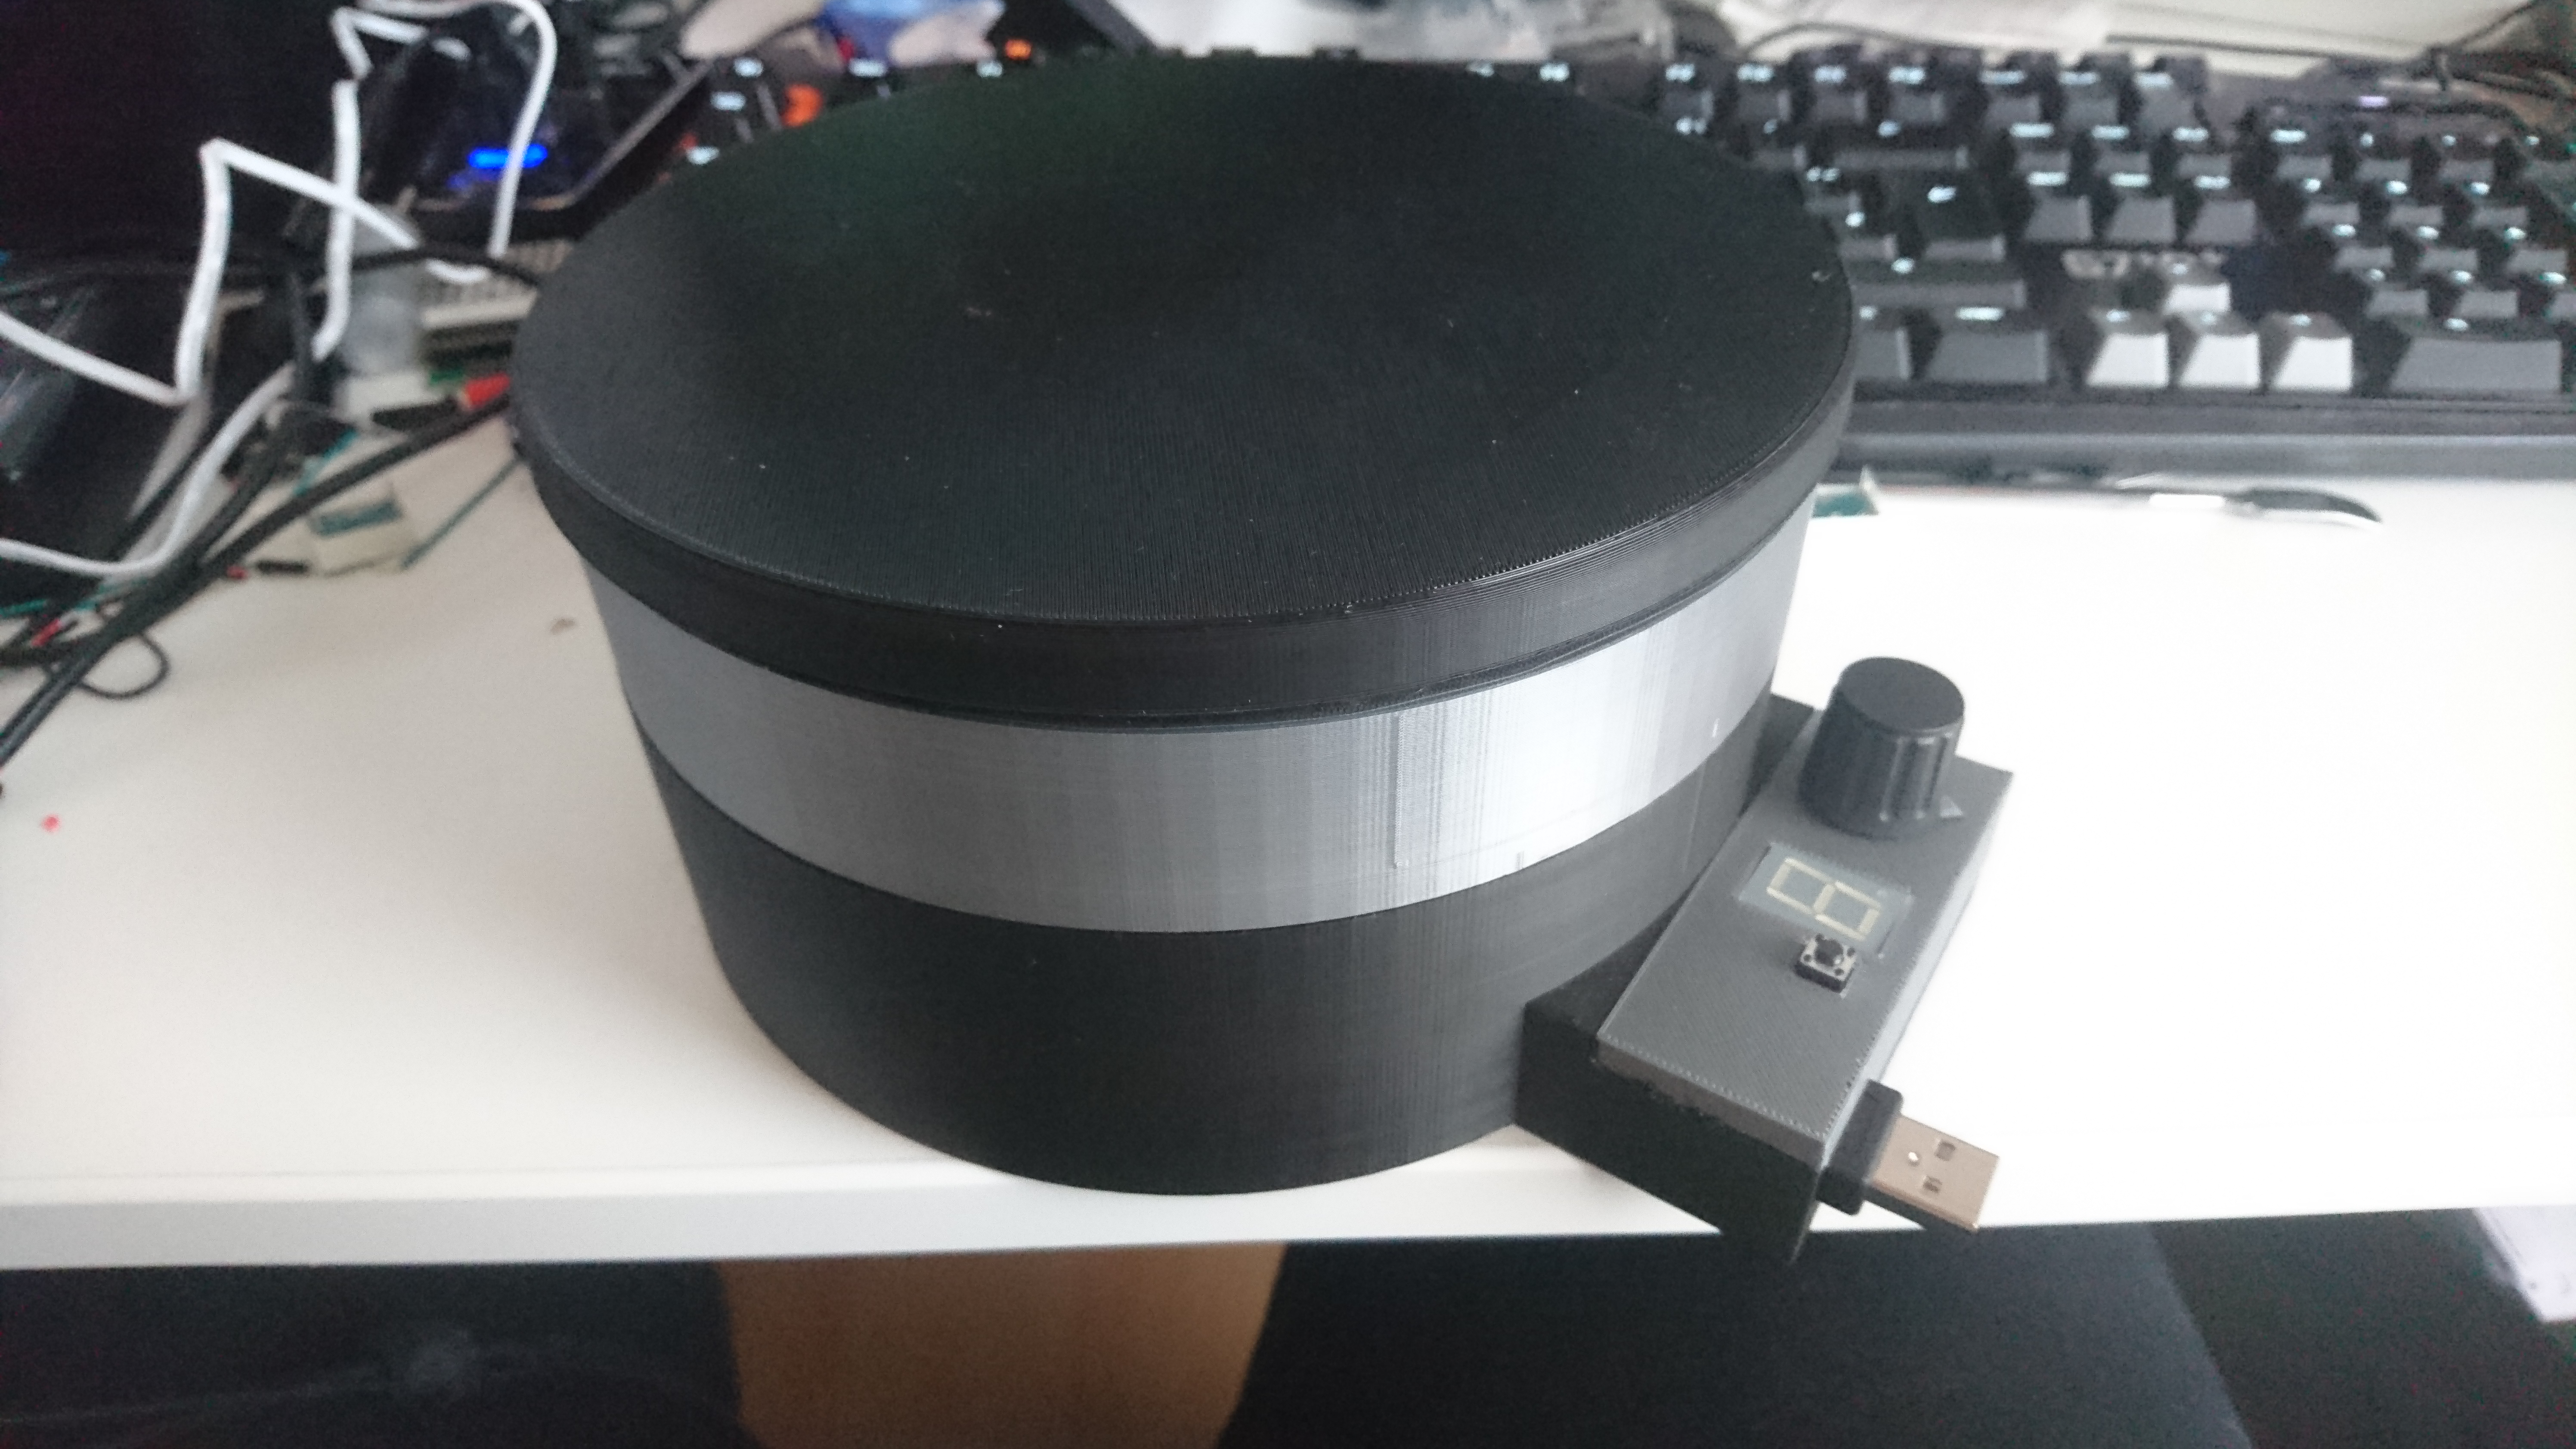 Arduino based Turntable by MisterIXI - Thingiverse